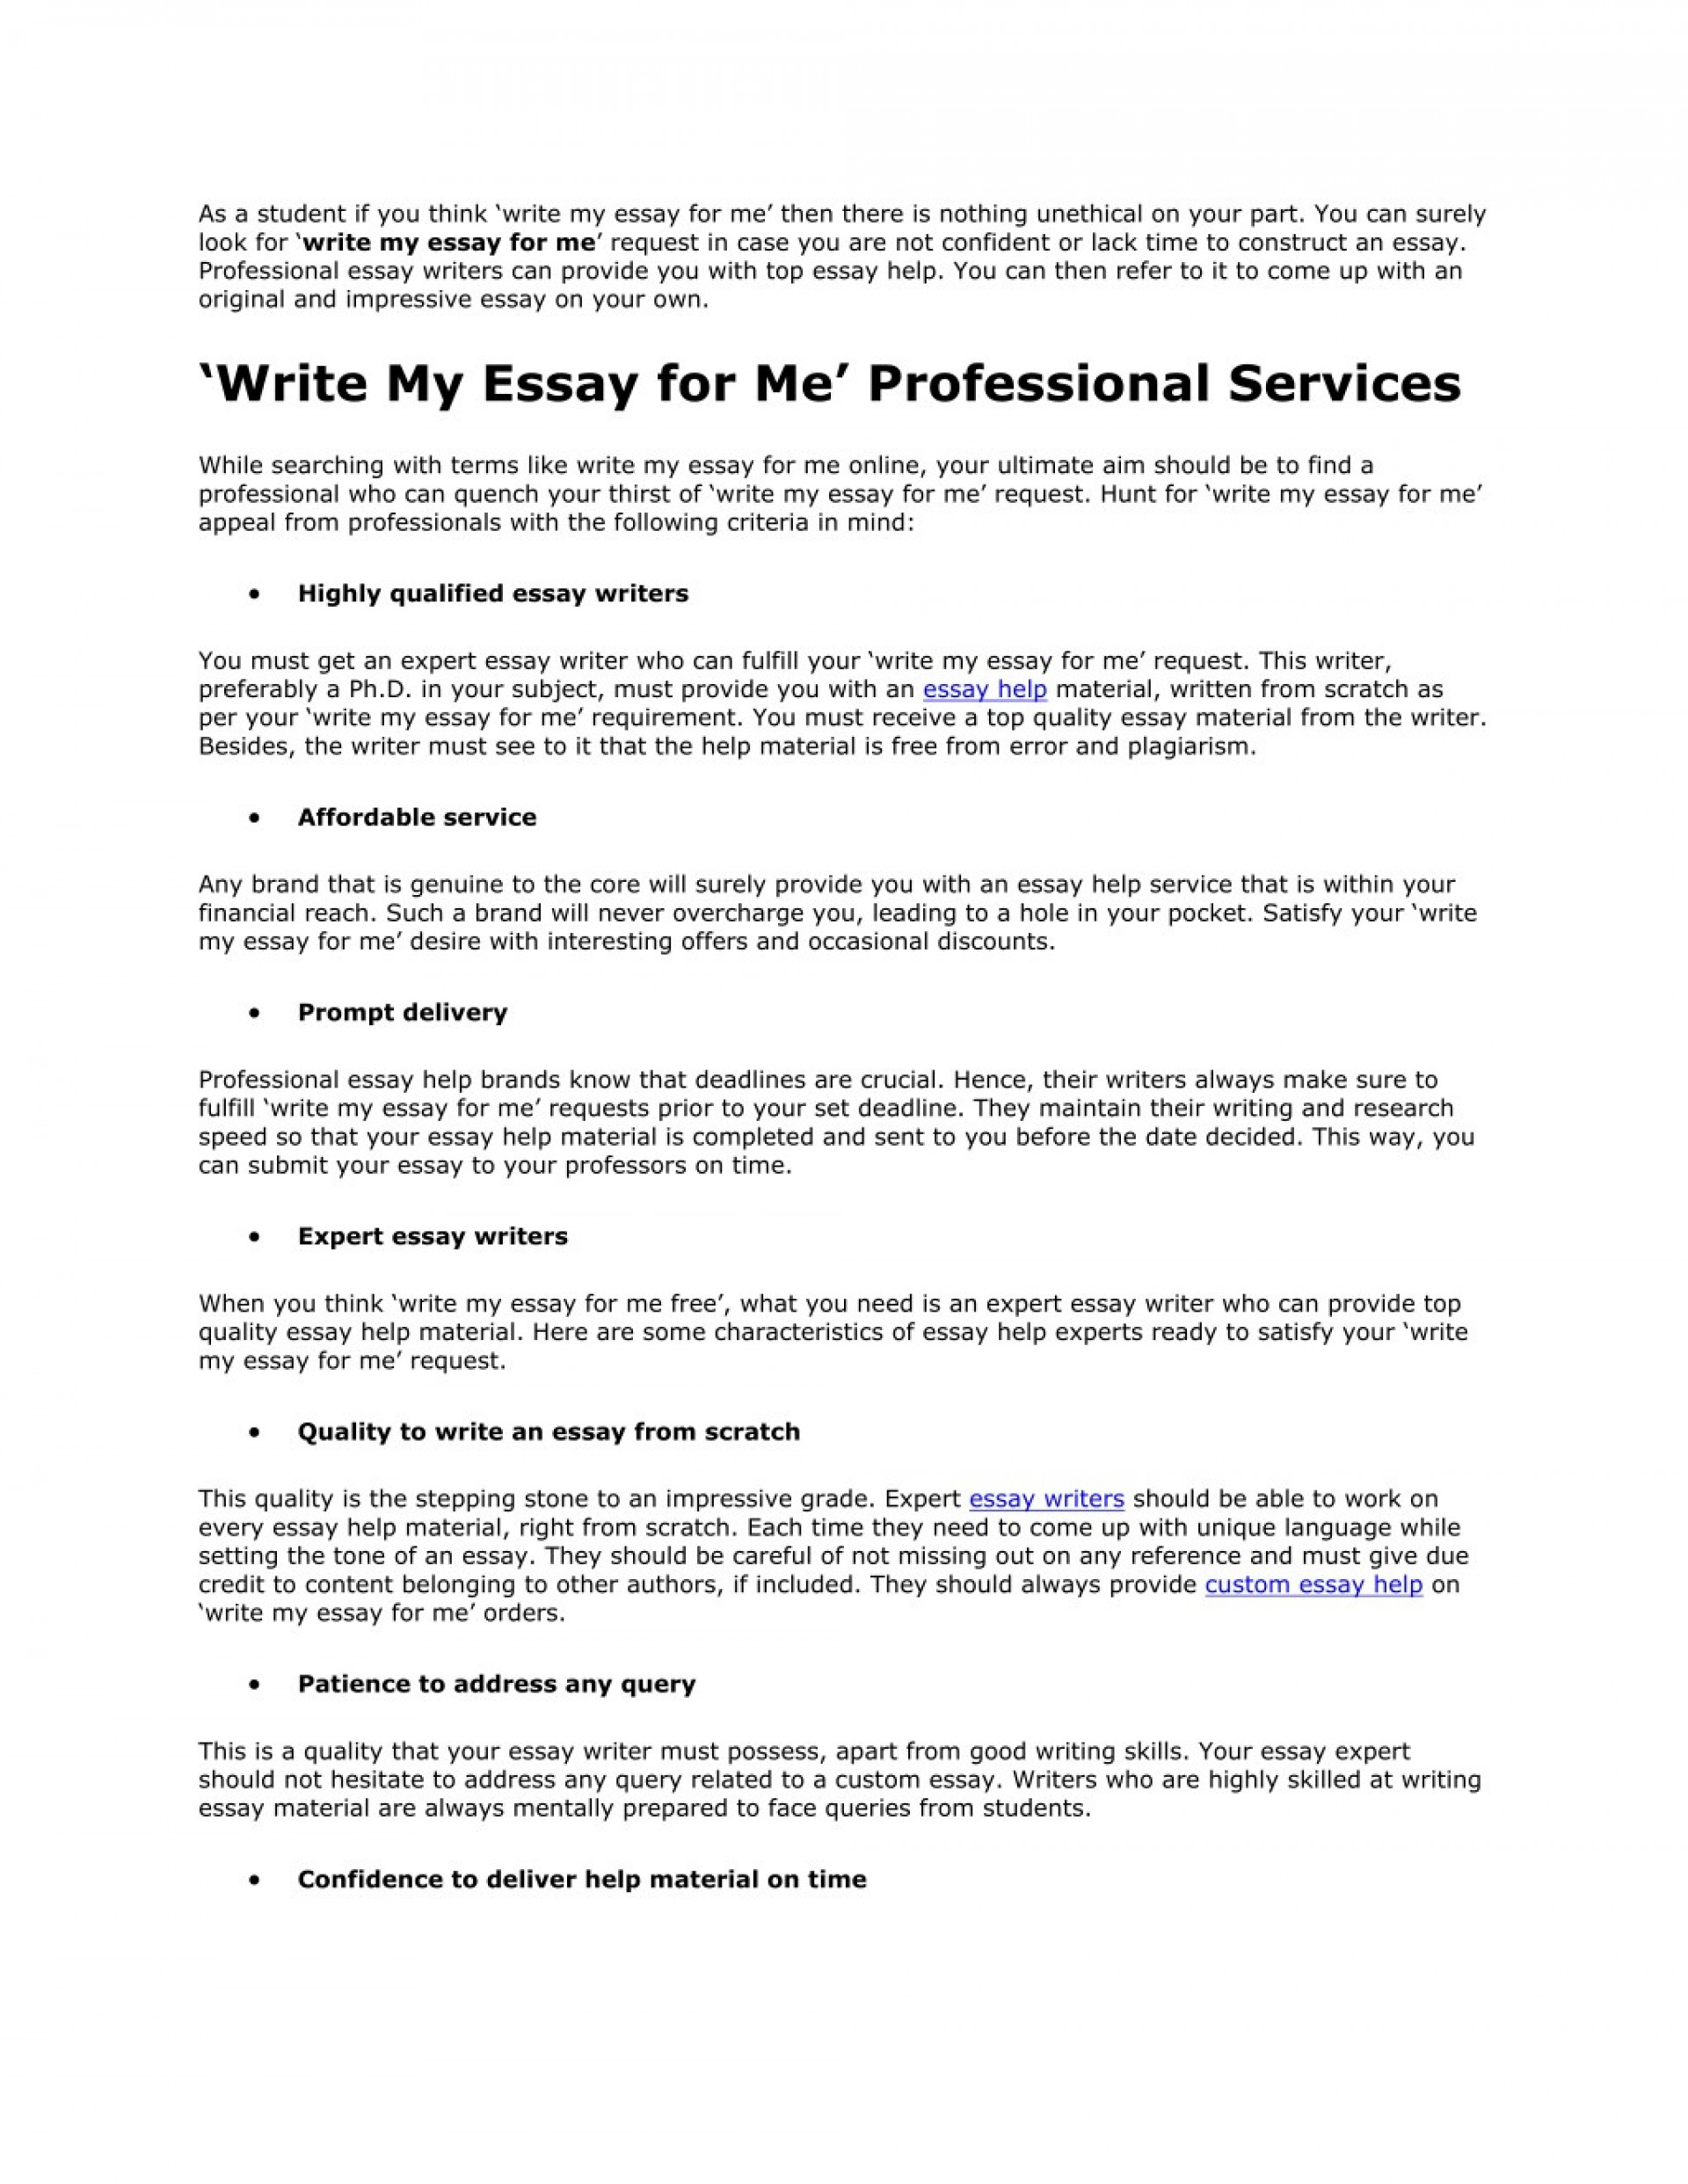 017 Write My Essay For Me Example As Student If You Think Surprising College Application Free Online Uk 1920